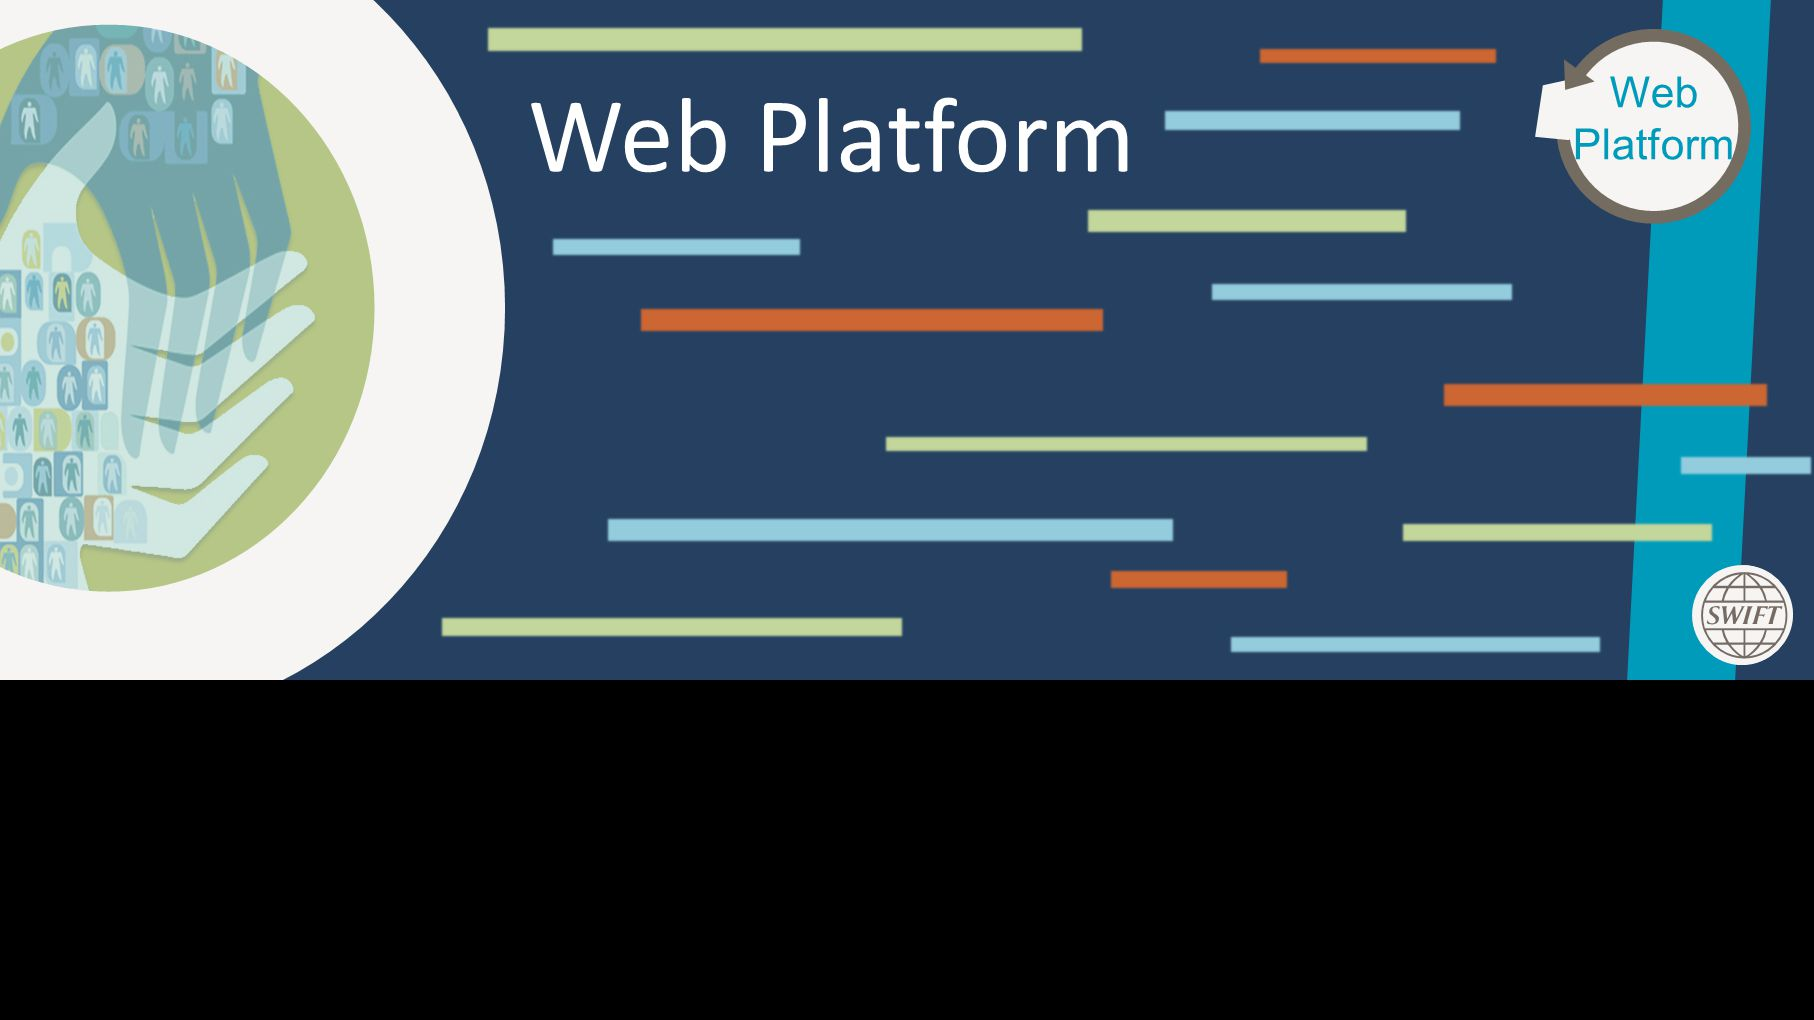 This Area Will Not Be Seen Web Platform Web Platform